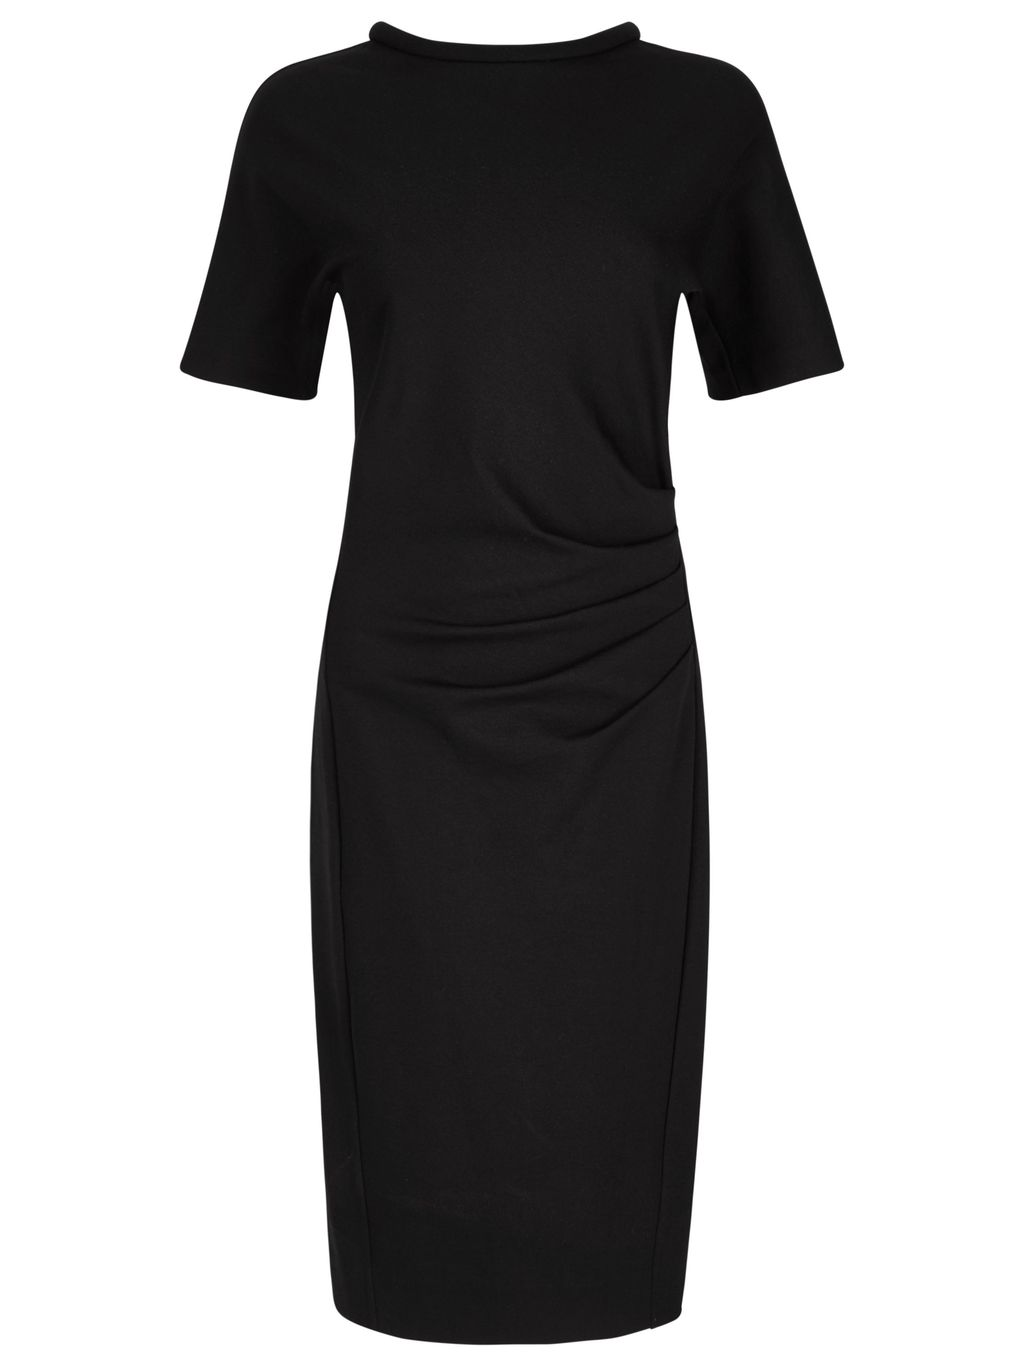 Miracle Short Sleeve Dress, Black - style: shift; fit: tailored/fitted; pattern: plain; neckline: high neck; waist detail: flattering waist detail; predominant colour: black; occasions: casual, work, occasion, creative work; length: just above the knee; fibres: polyester/polyamide - 100%; sleeve length: short sleeve; sleeve style: standard; texture group: crepes; pattern type: fabric; season: s/s 2016; wardrobe: basic